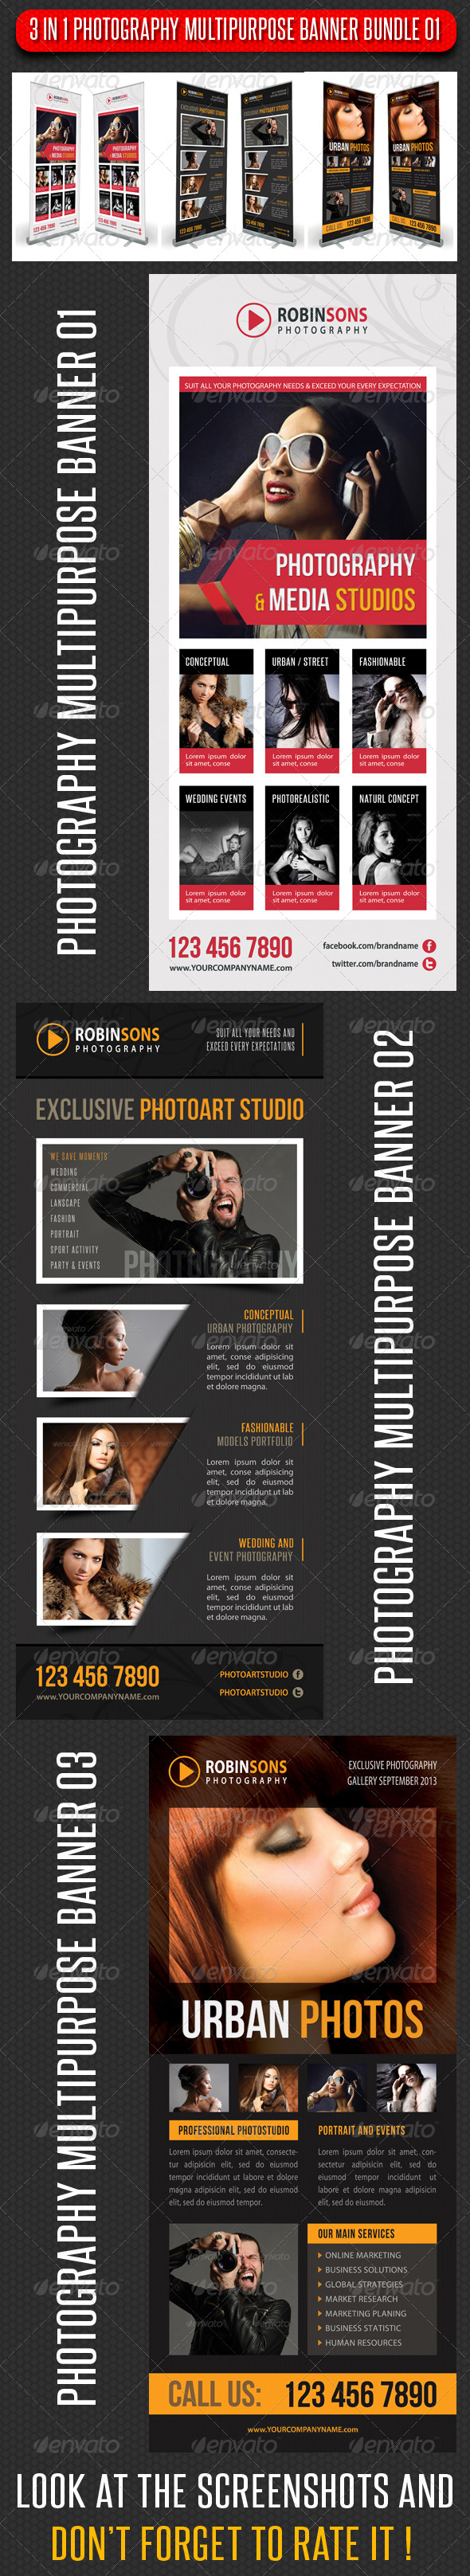 GraphicRiver 3 in 1 Photography Multipurpose Banner Bundle 02 7241388